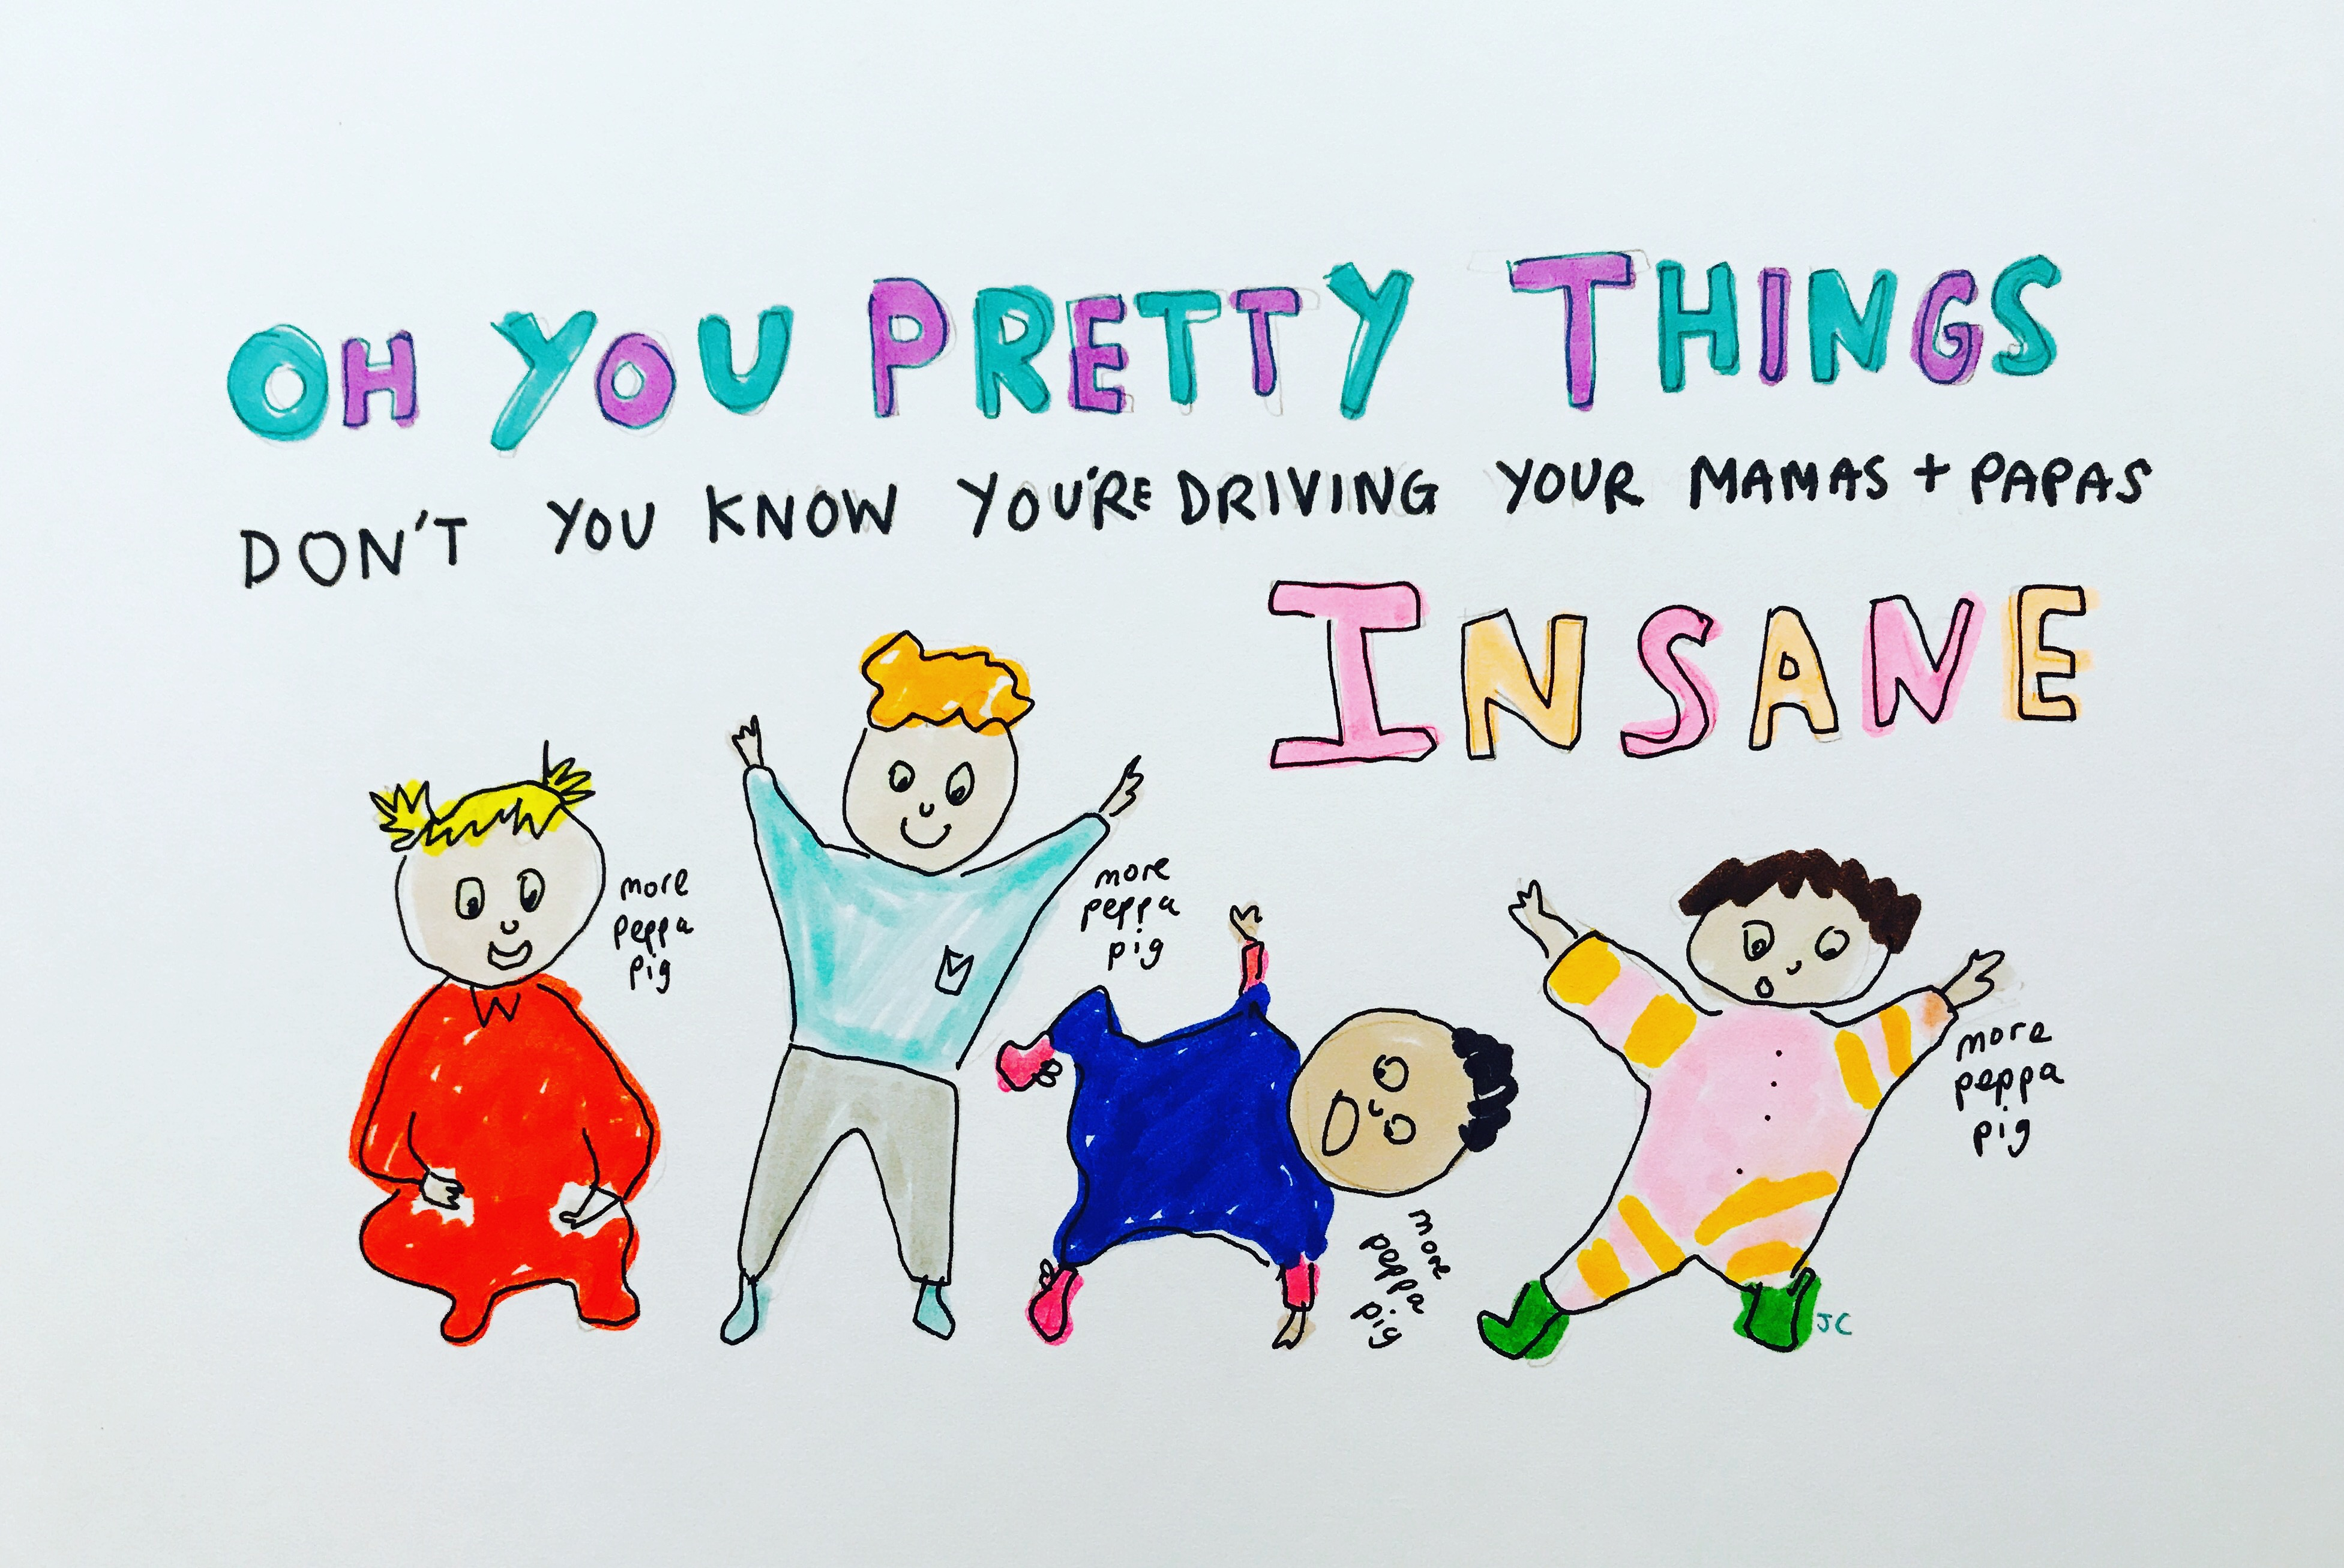 OH YOU PRETTY THINGS PRINT - Jessie Cave